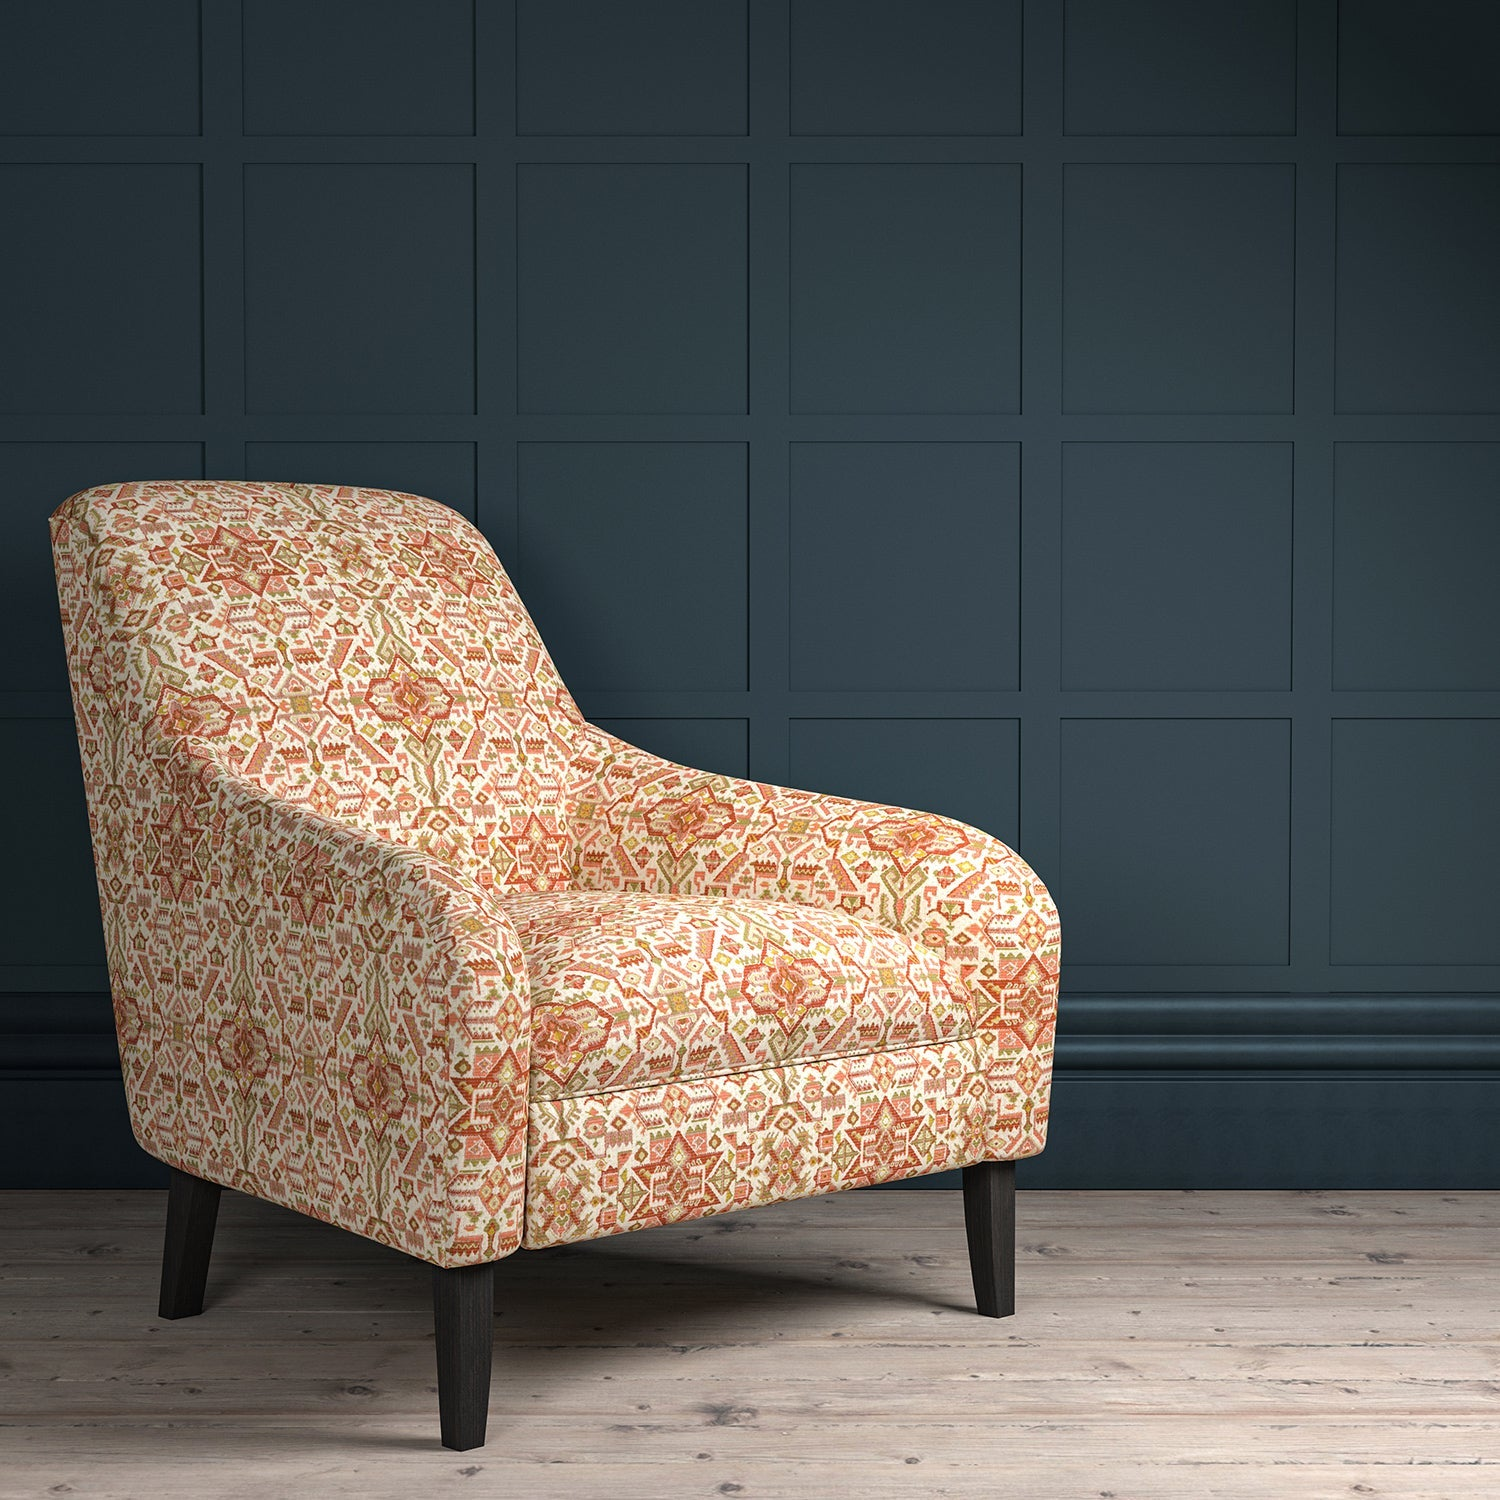 Chair upholstered in a orange and neutral coloured large scale geometric upholstery fabric